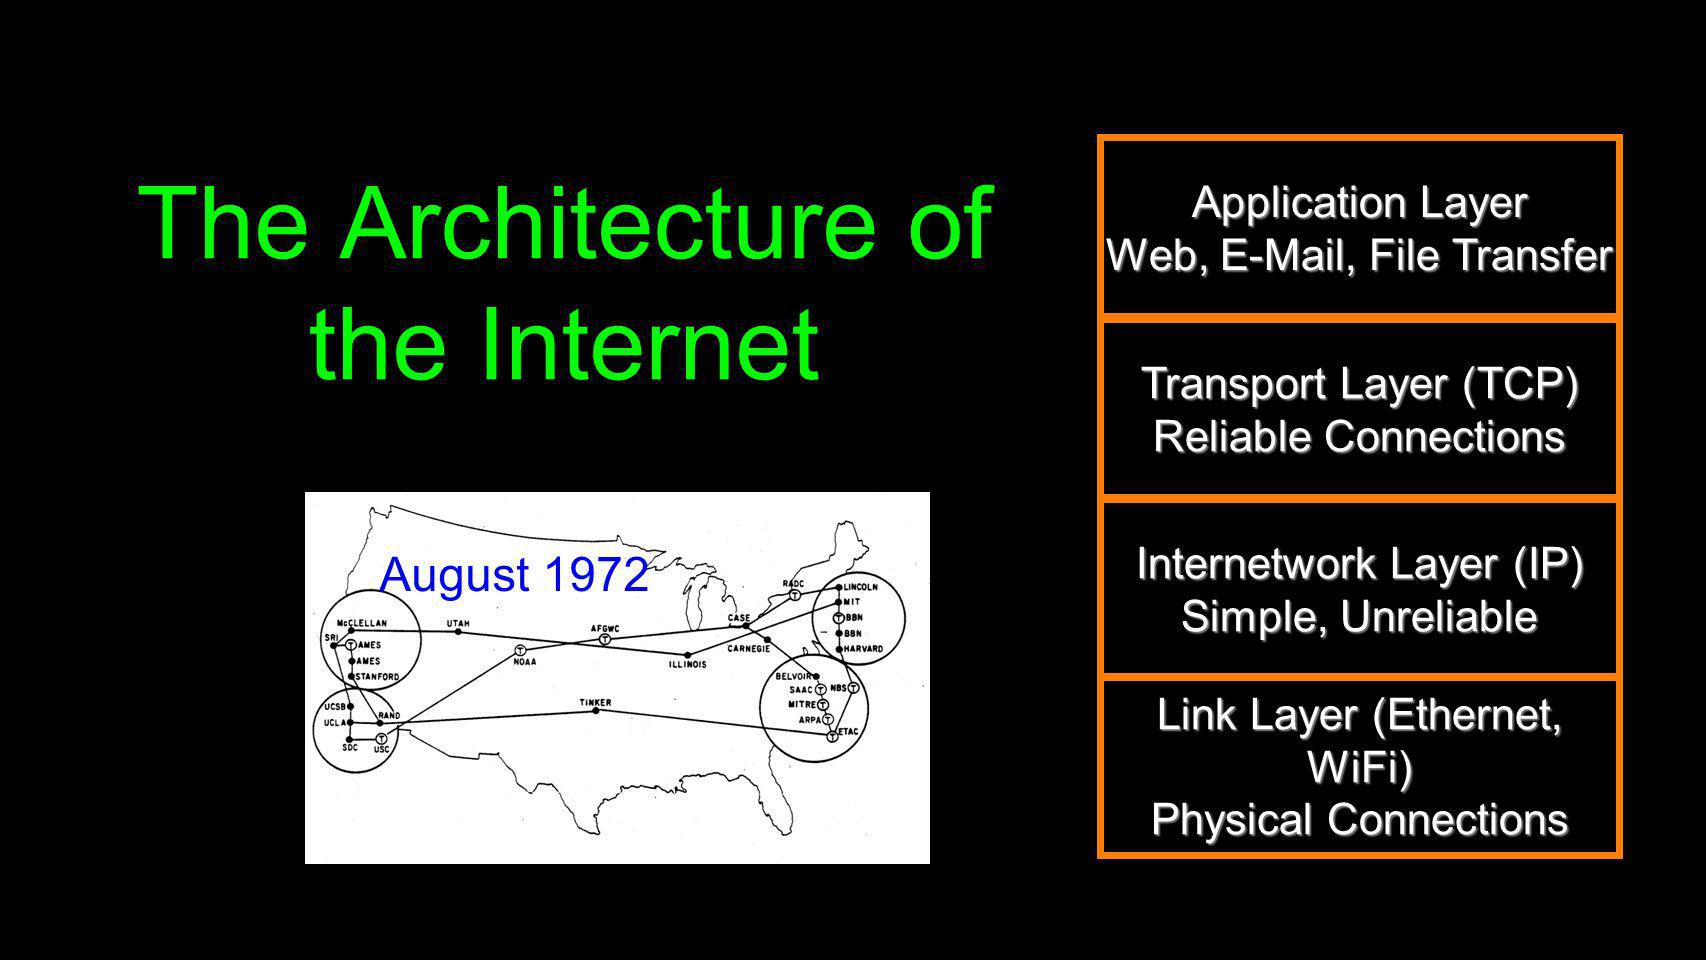 The Architecture of the Internet